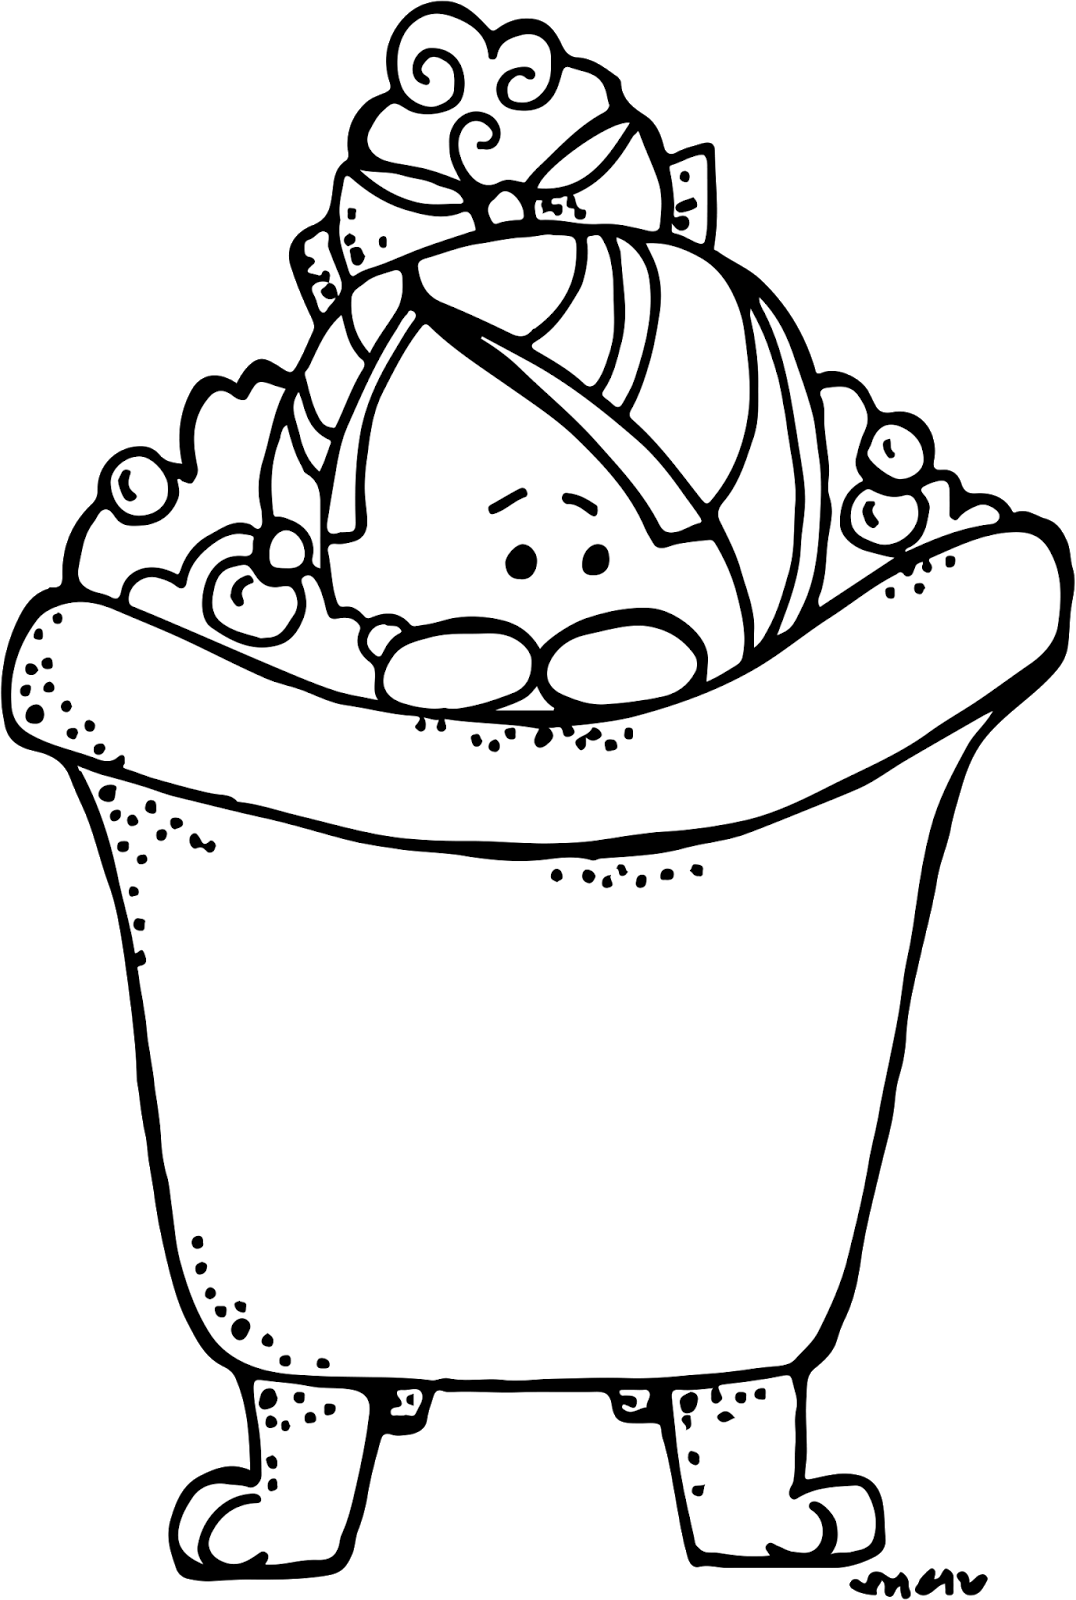 ᐈ Bathing stock cliparts, Royalty Free baby bathing vectors | download on  Depositphotos®